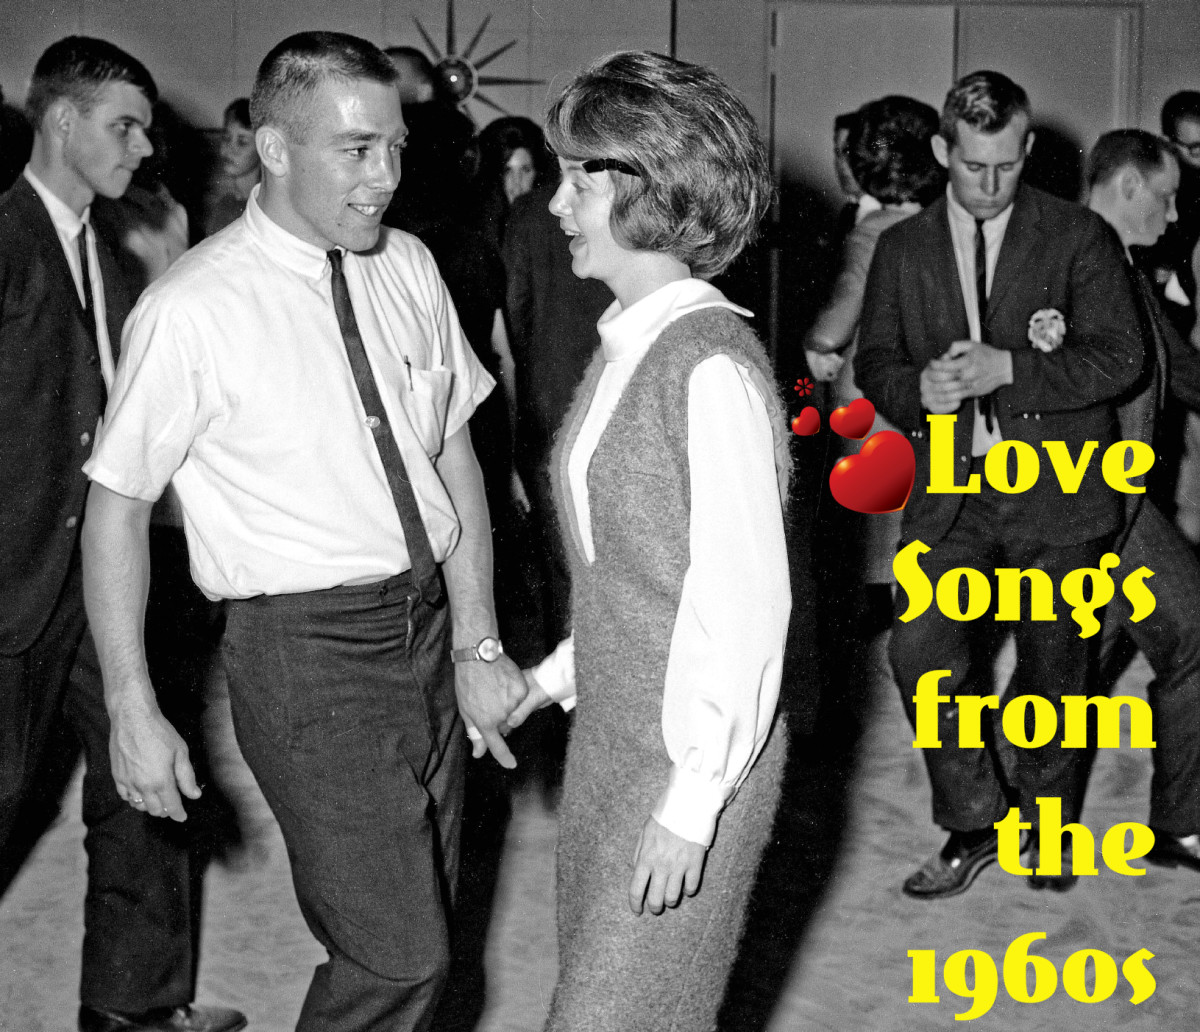 114 Love Songs From the 1960s